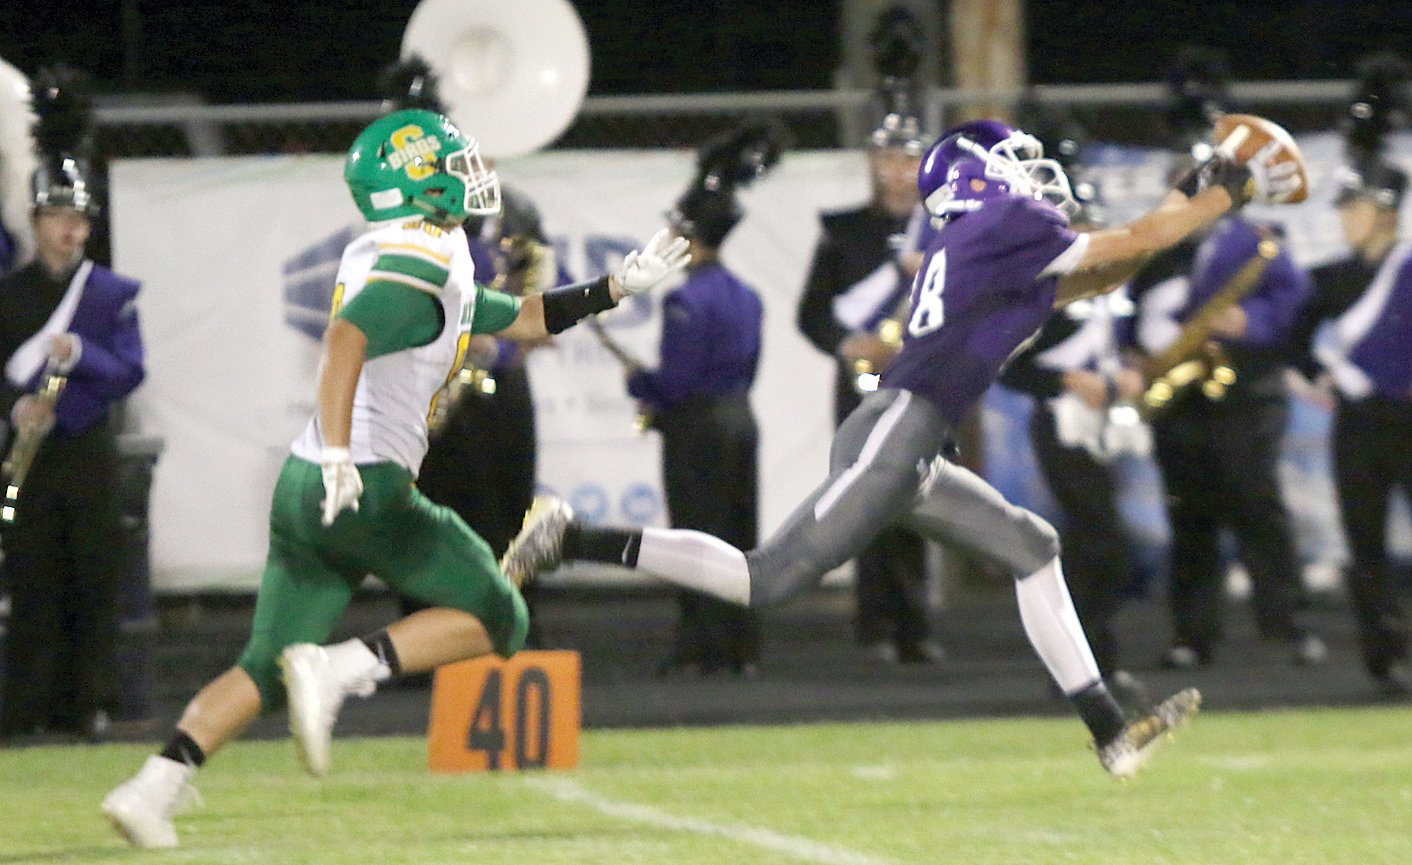 Litchfield receiver Colin Becker hauls in a 40-yard pass from Clayton Walch to set up the Panthers' first touchdown, a 30-yard pass that also went to Becker. The Panthers also scored in the fourth quarter, but Southwestern rolled to a 54-12 victory at Lloyd Hill Field in Litchfield on Friday, Sept. 13.